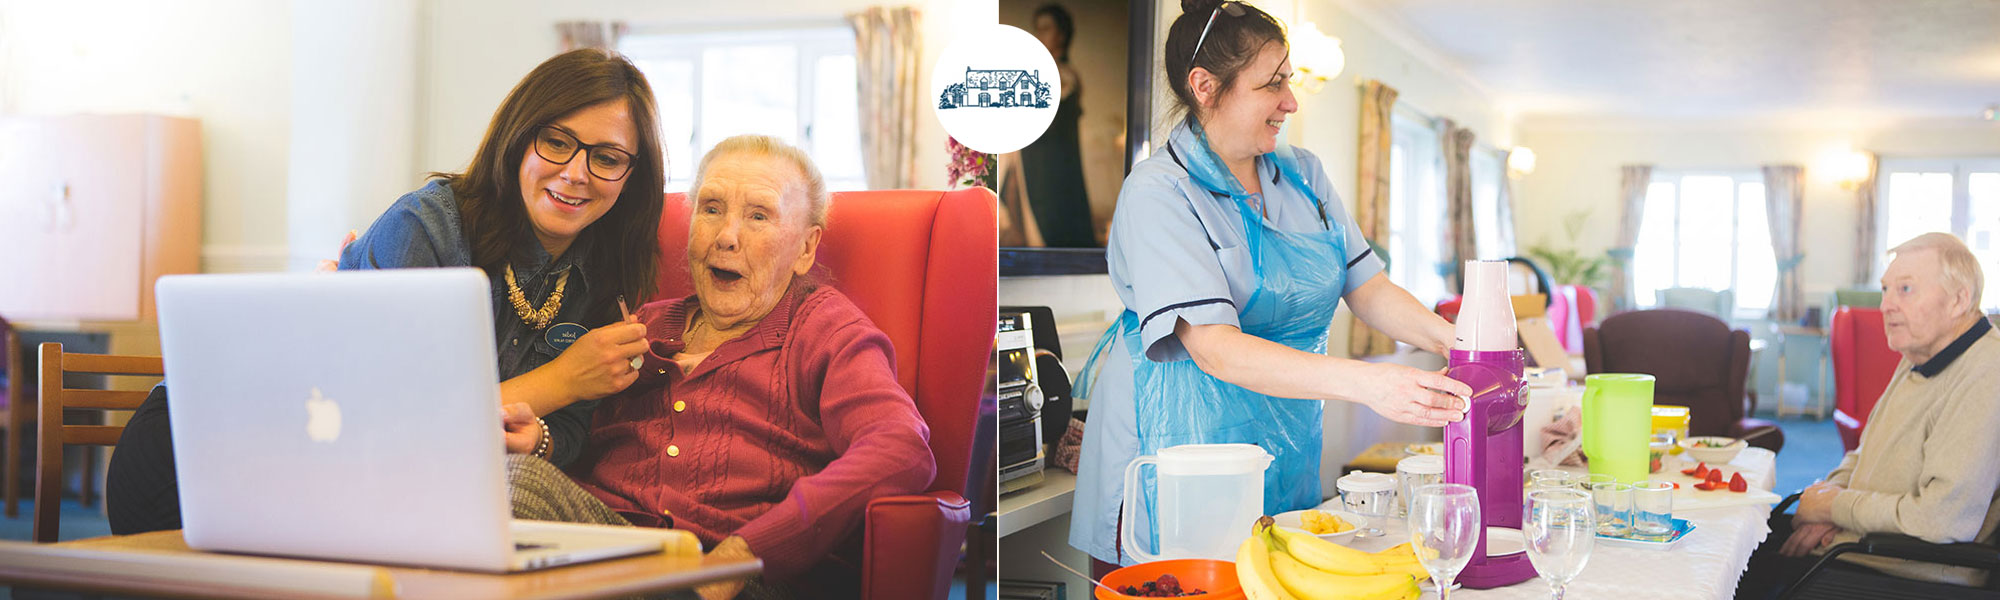 A CARE HOME THAT PROVIDES A HOLISTIC APPROACH